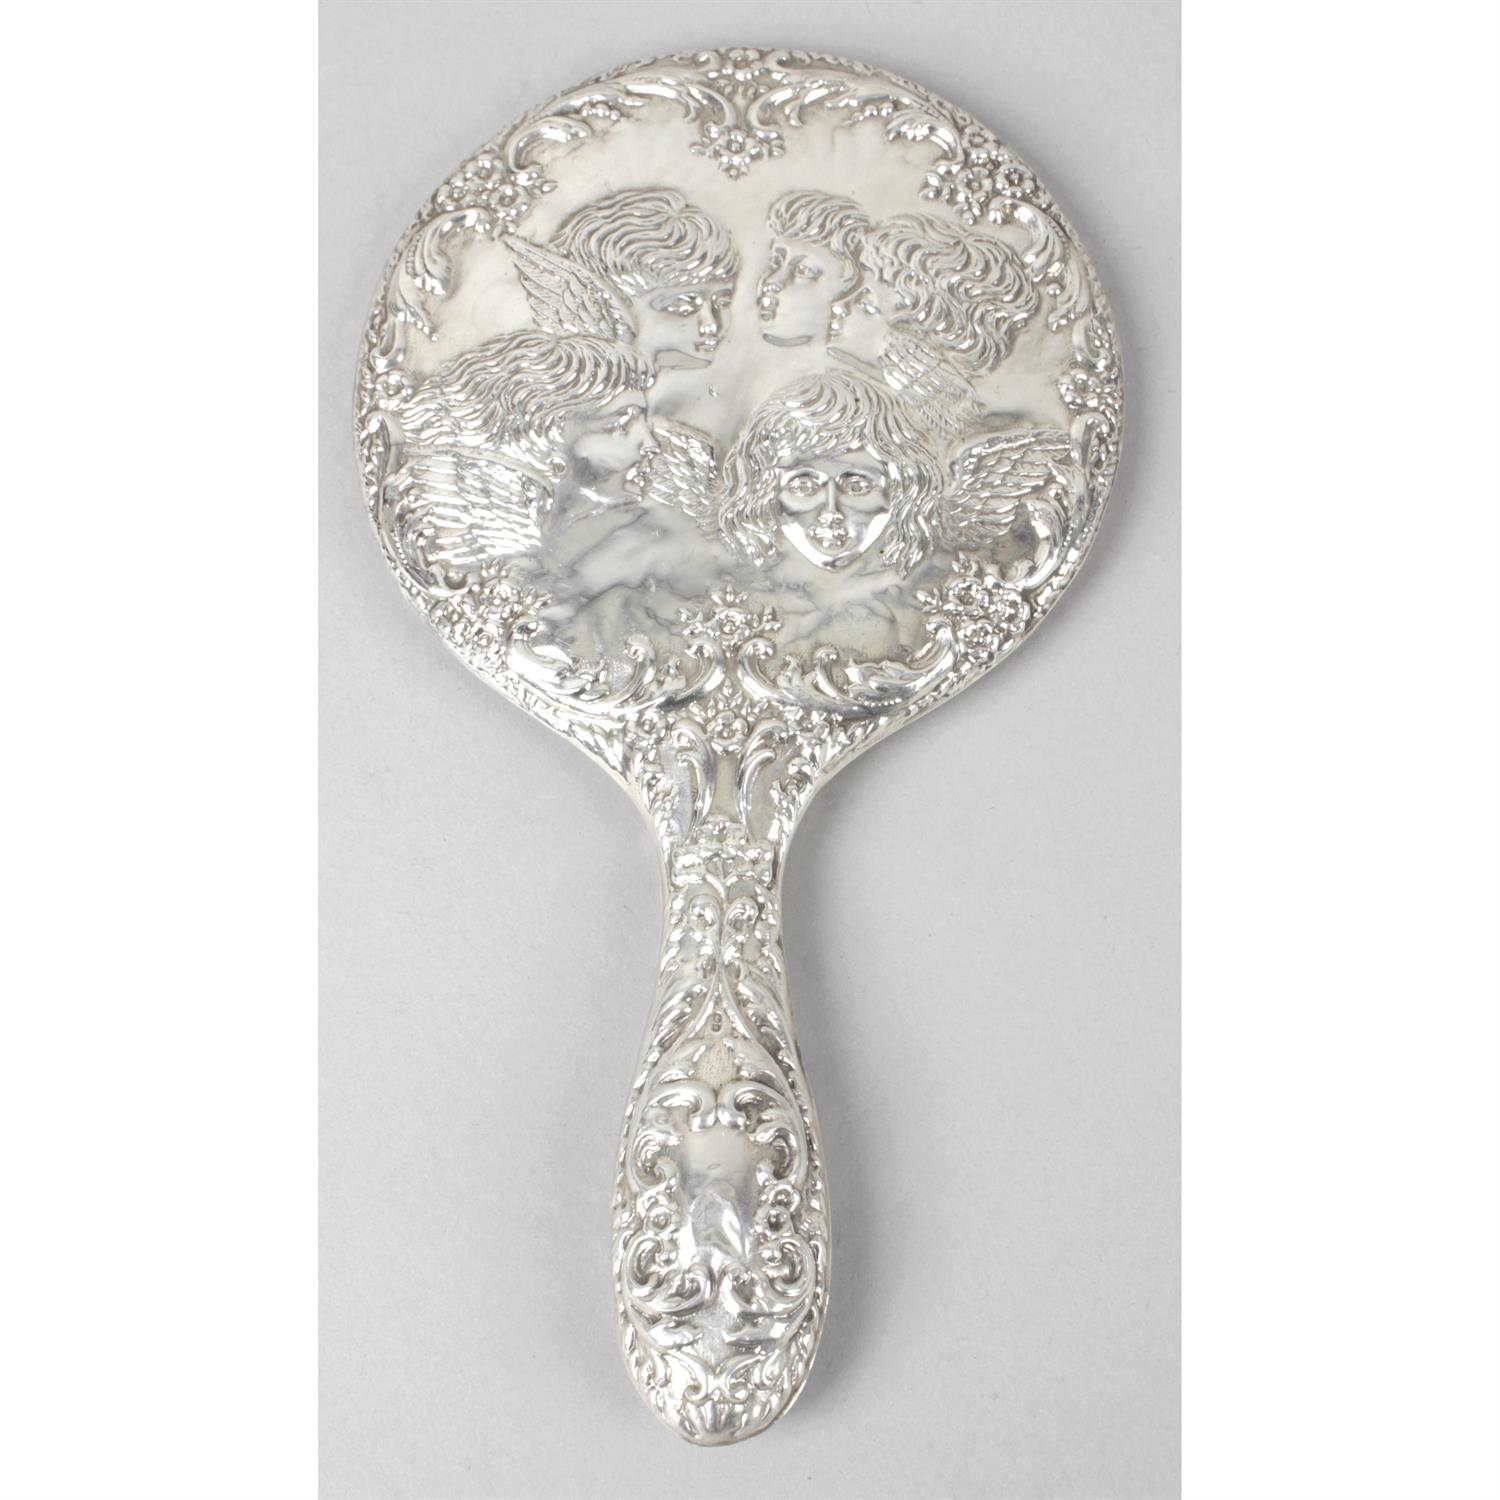 A modern silver mounted hand mirror; together with a cased silver mounted military brush and comb